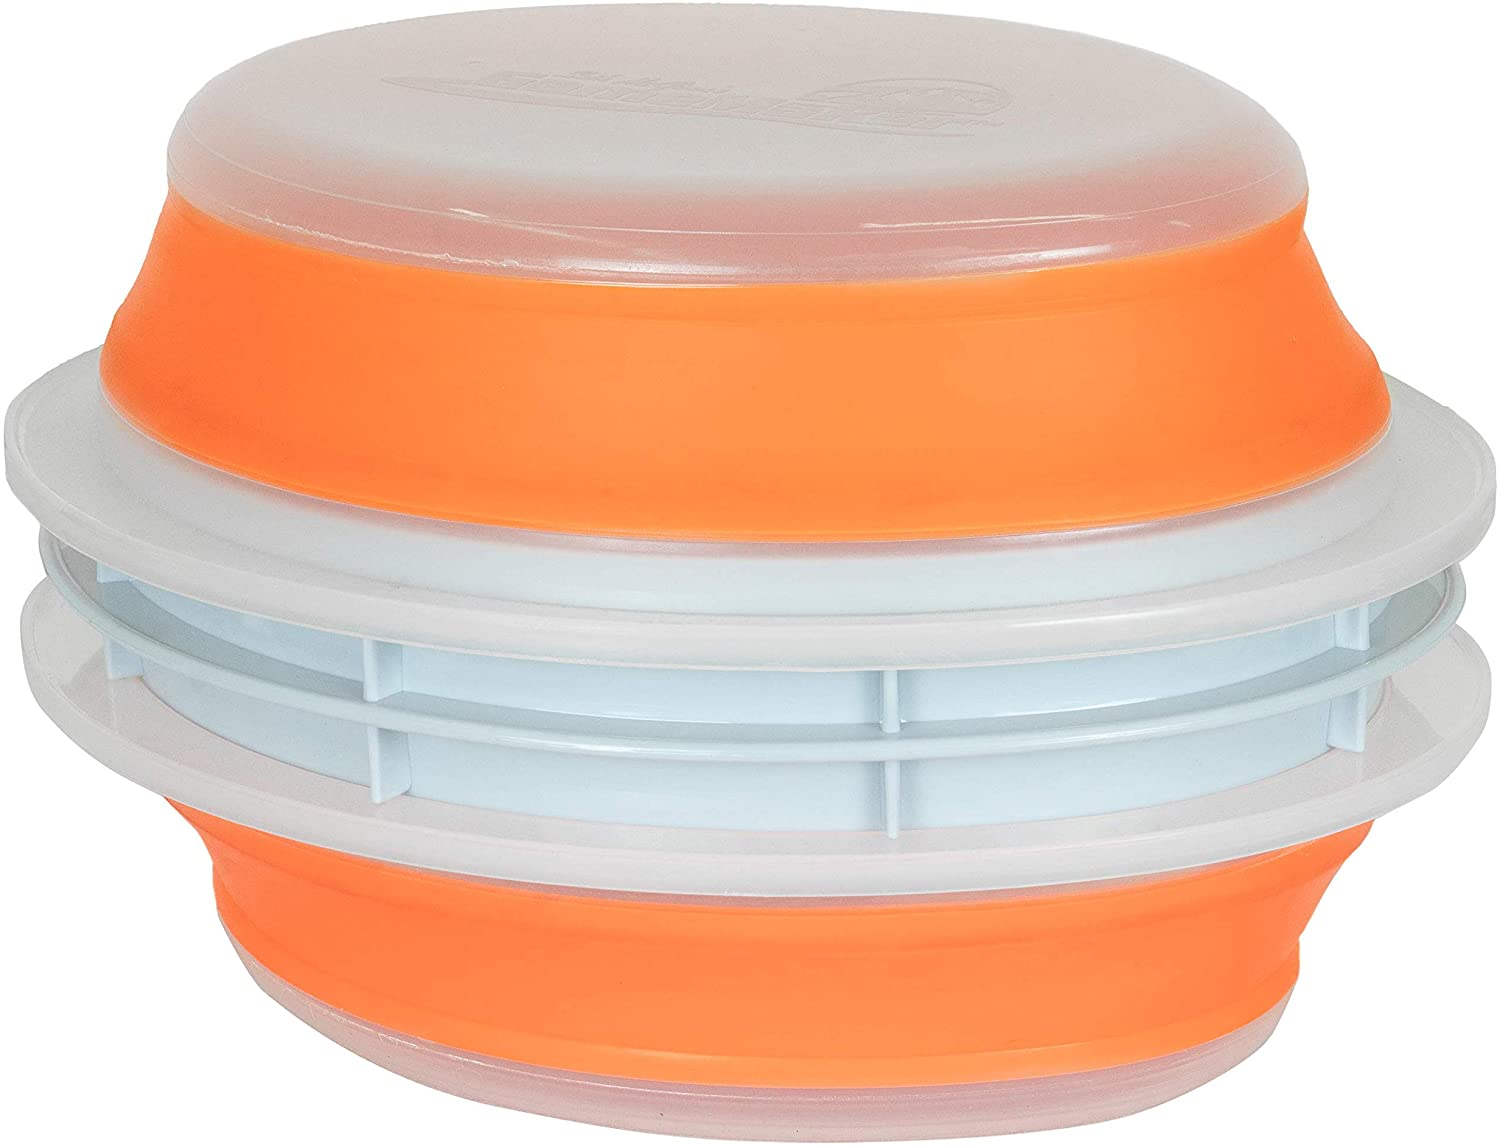 CanCooker Original Collapsible & Mess-Free Batter Bowl, Clear & Orange, Standard